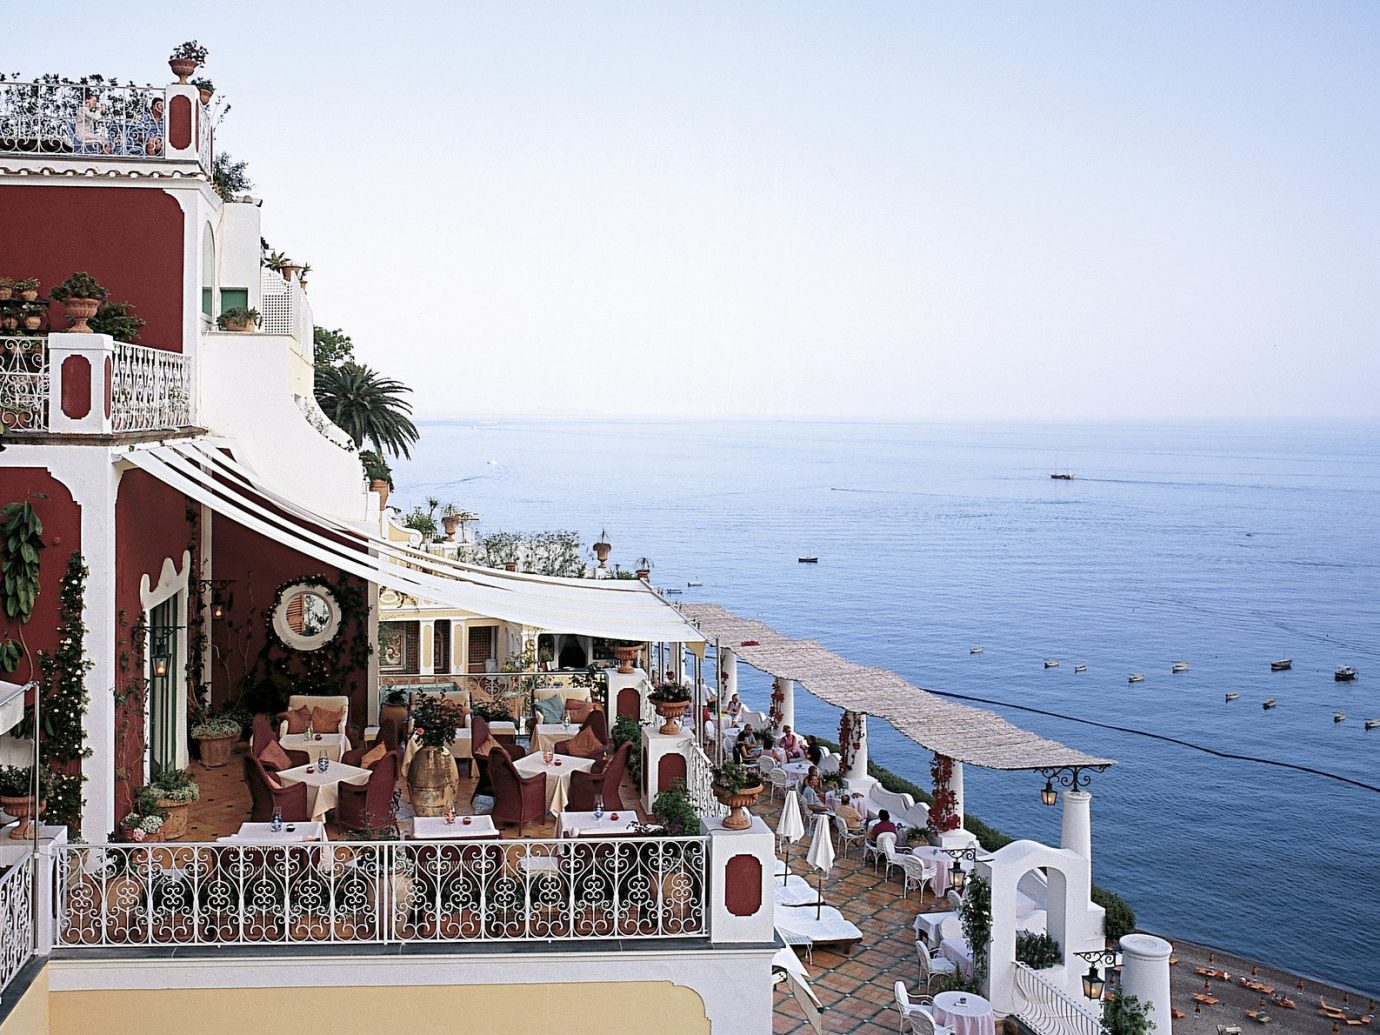 Hotels Romance sky outdoor Boat vacation Sea Town tower Coast tourism Beach people vehicle Resort Deck